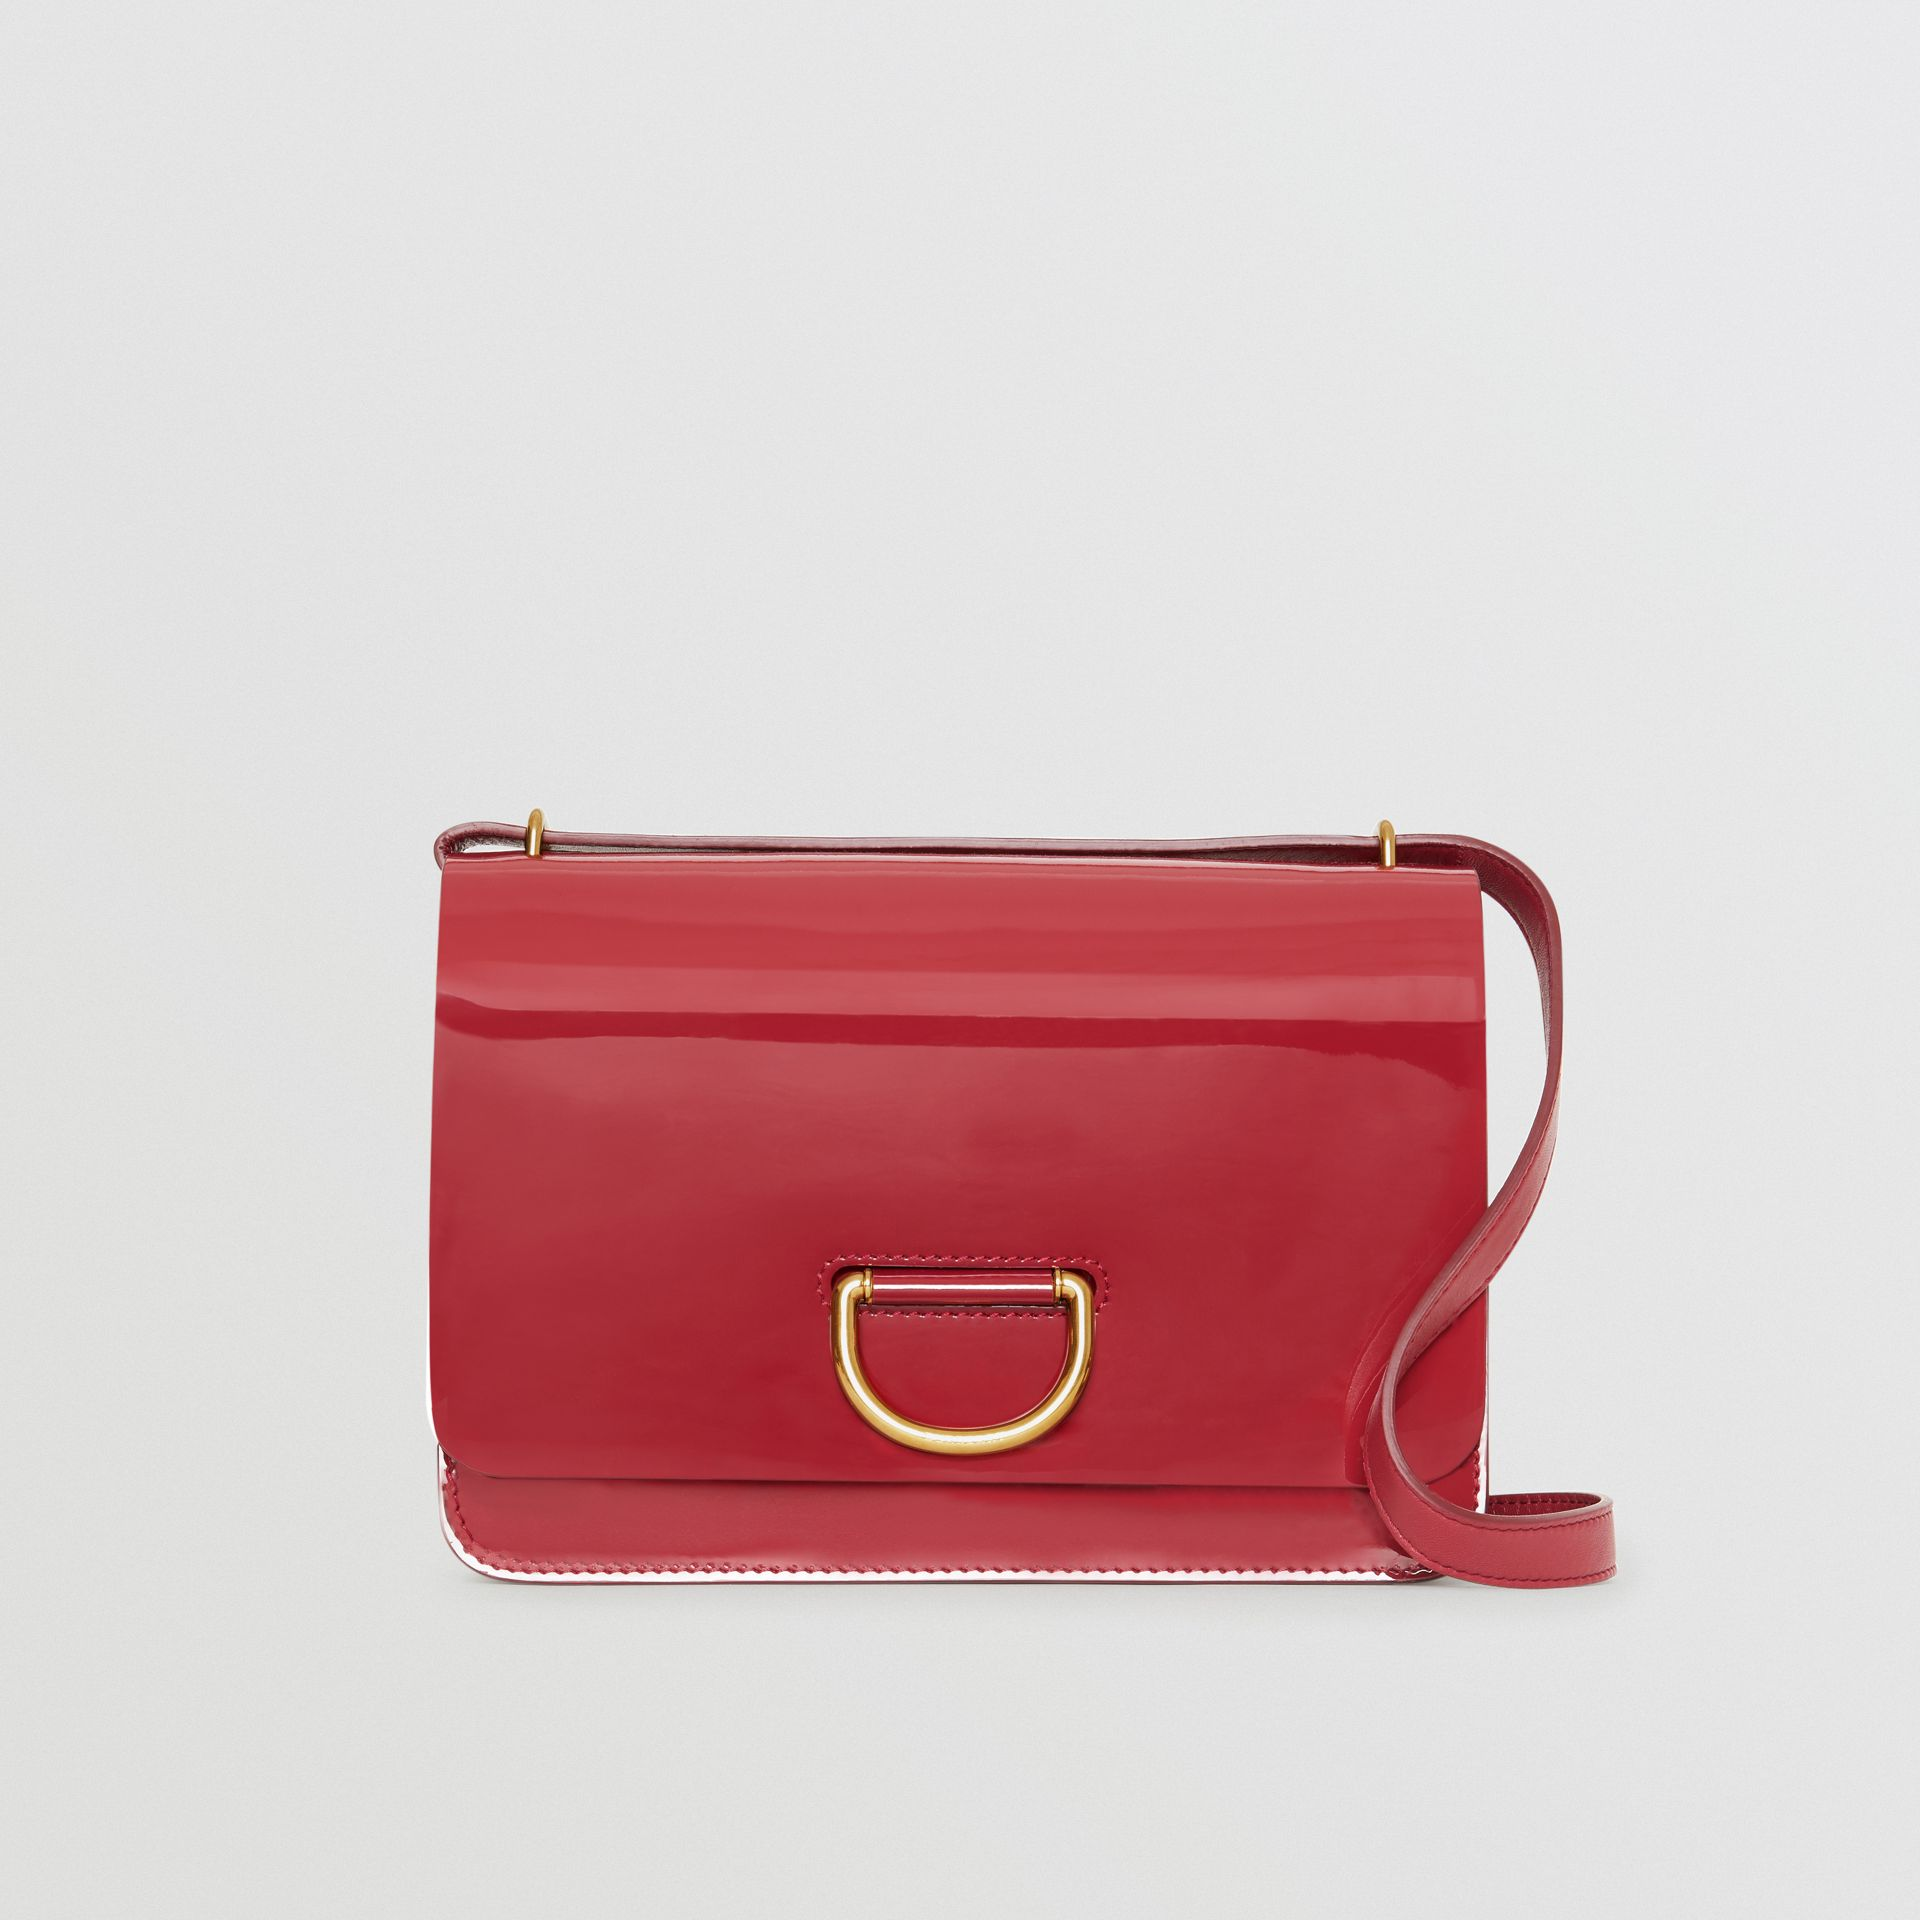 Sac The D-ring moyen en cuir verni (Carmin) - Femme | Burberry Canada - photo de la galerie 0